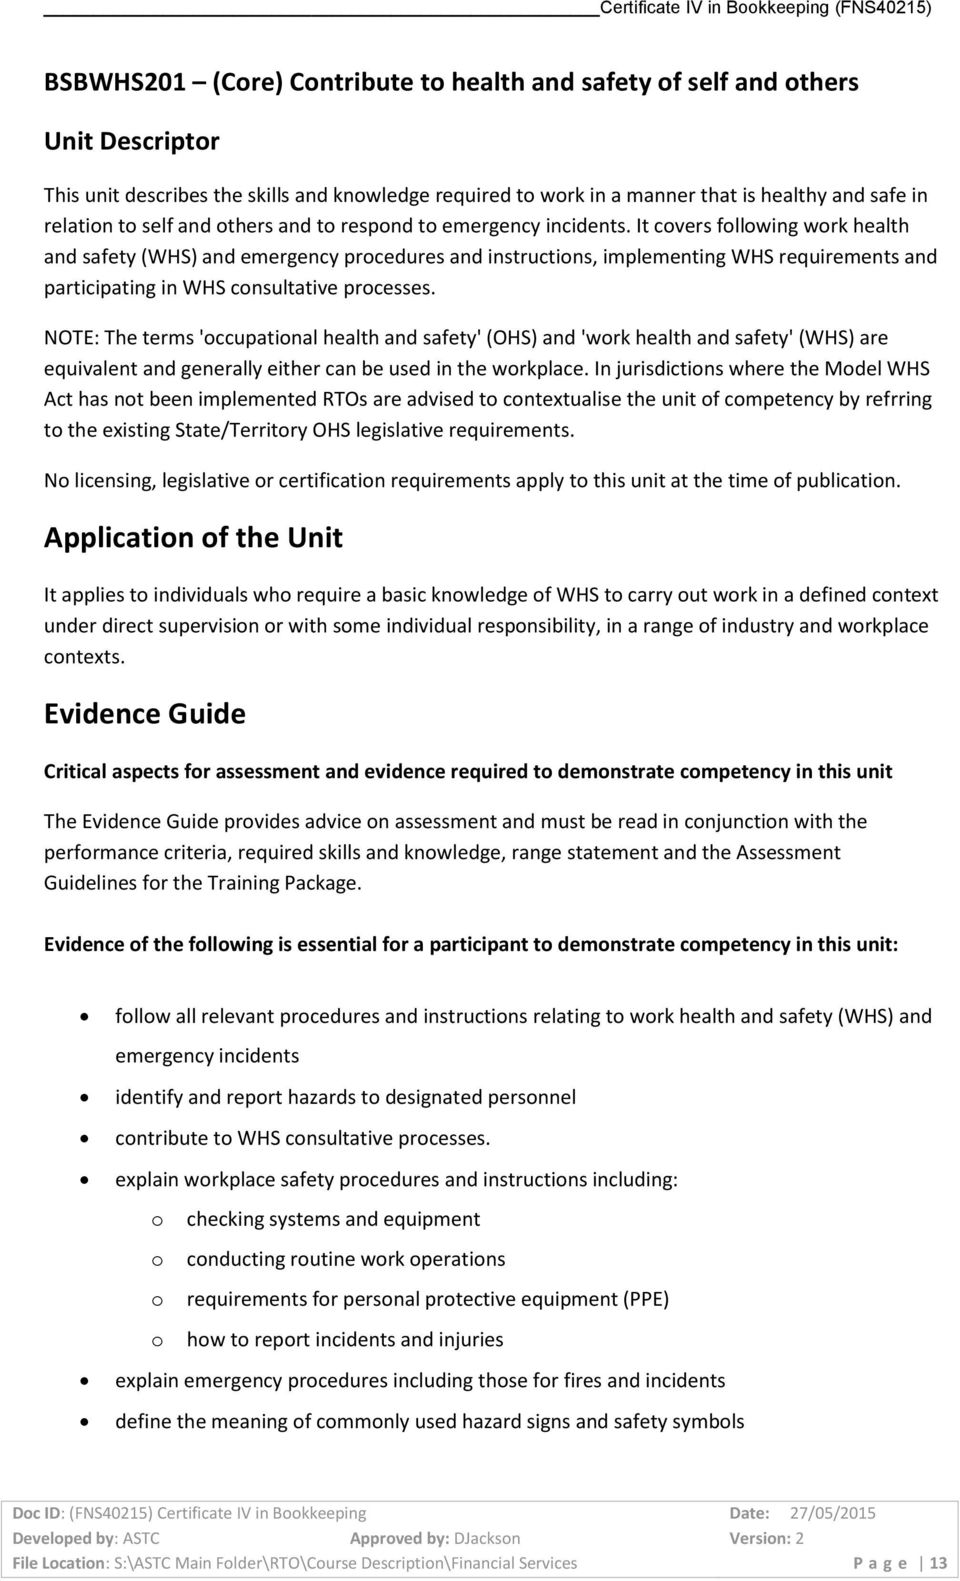 It covers following work health and safety (WHS) and emergency procedures and instructions, implementing WHS requirements and participating in WHS consultative processes.